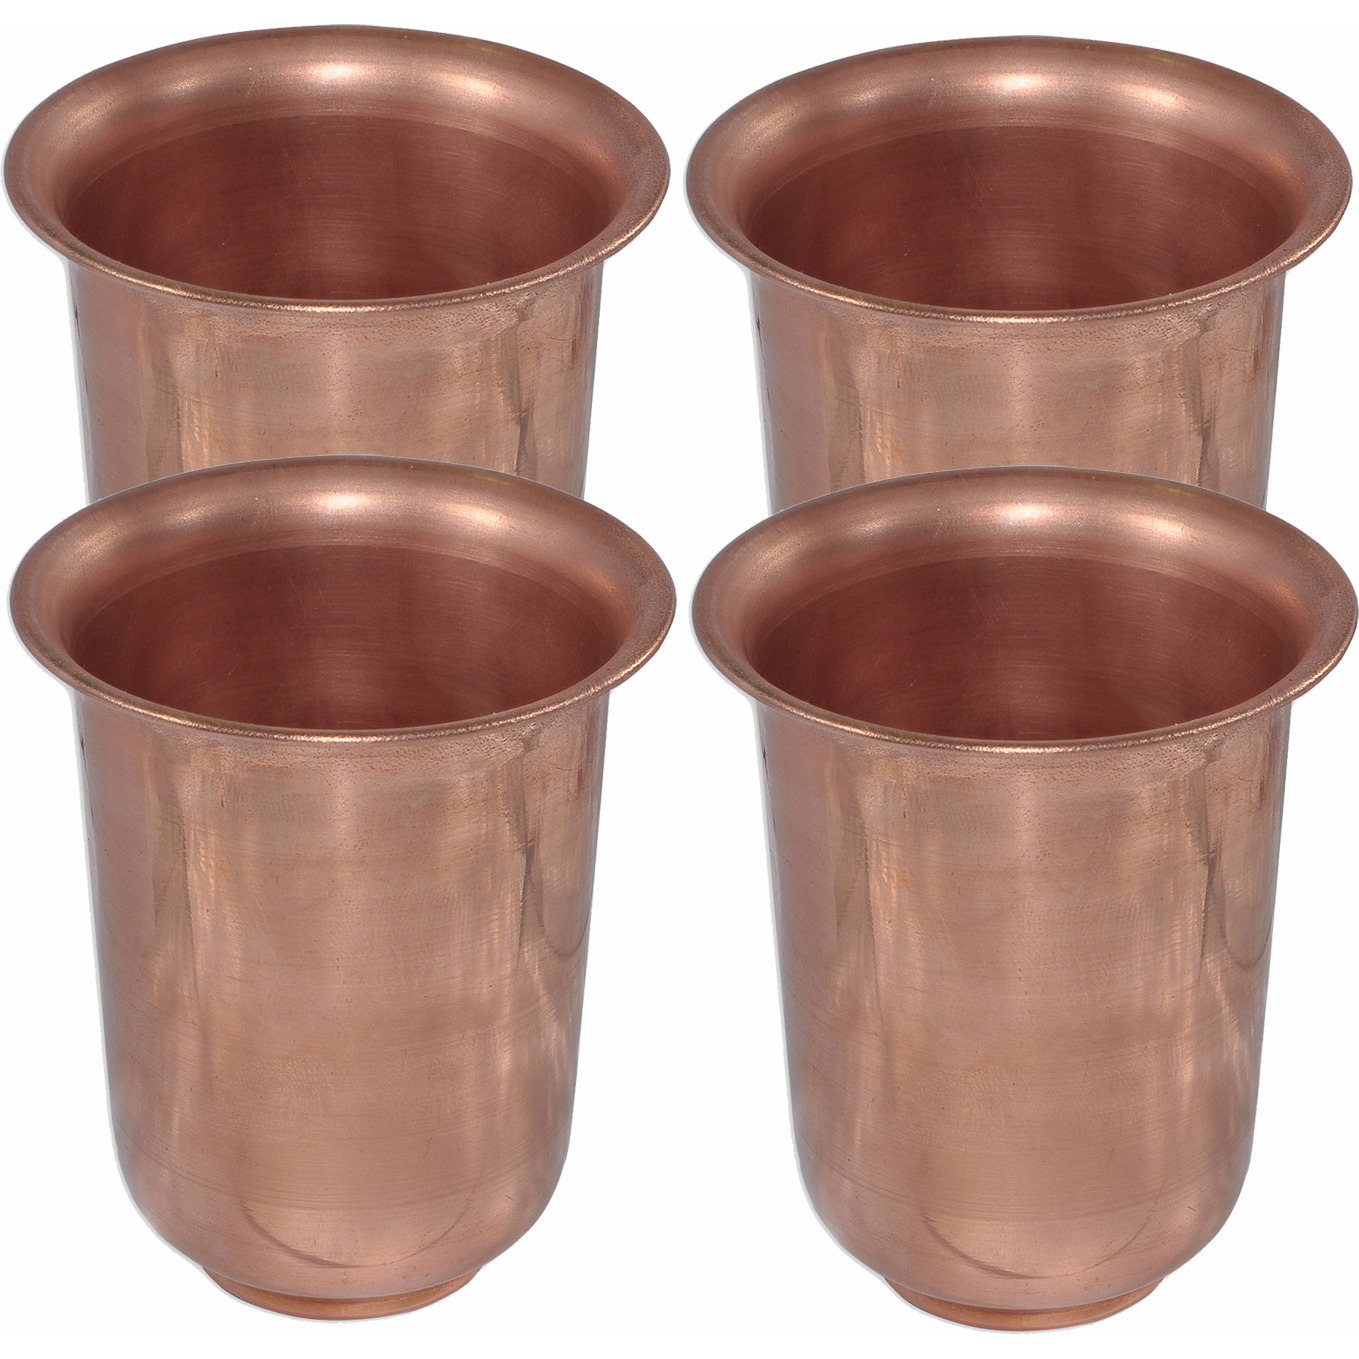 Set of 4 - Prisha India Craft B. Handmade Water Glass Copper Tumbler | Traveller's Copper Cup